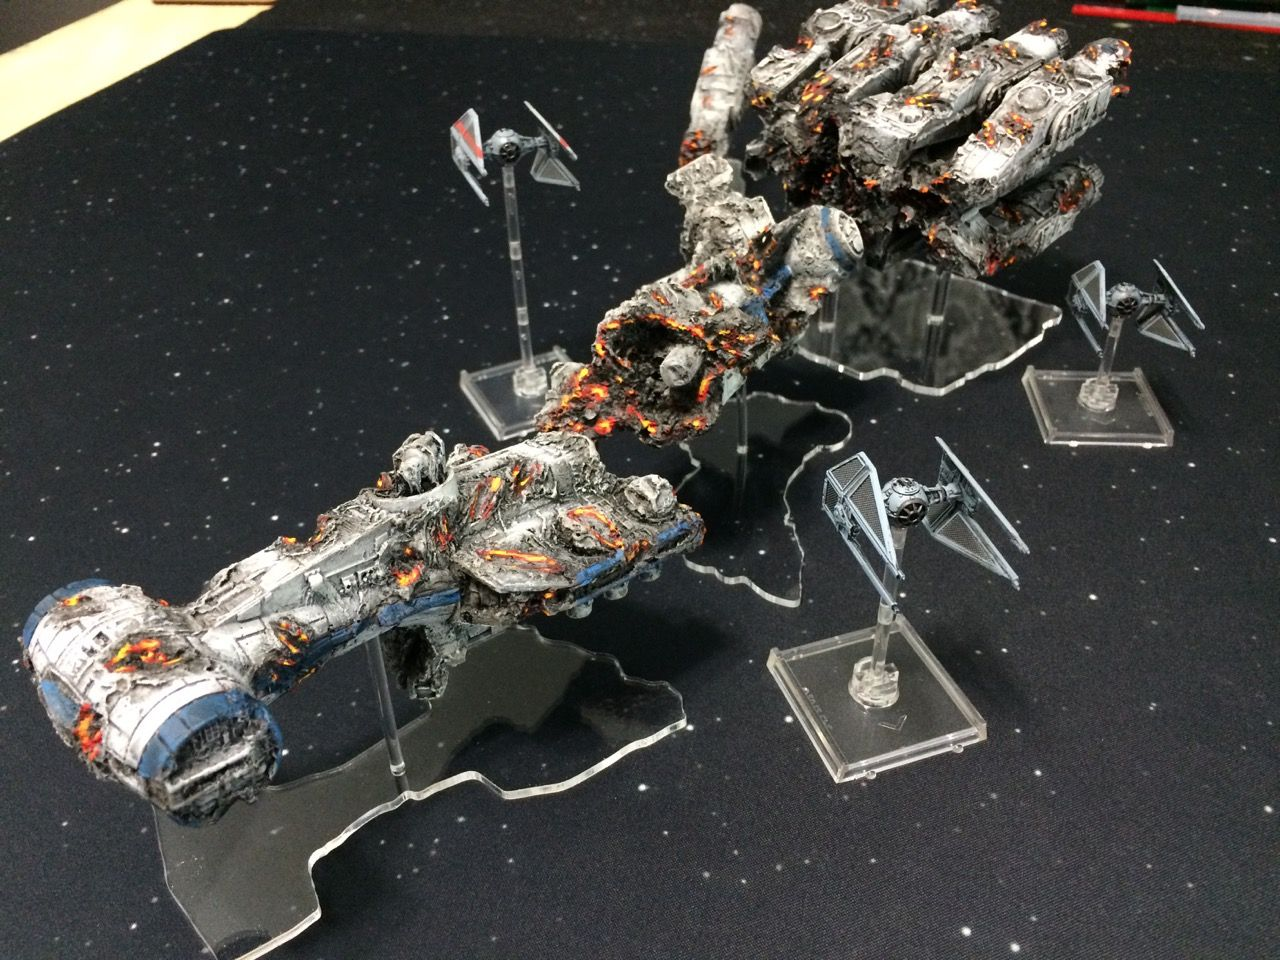 Space Rocks Destroyed Blockade Runner For Star Wars X Wing Review And Gallery Wwpd Wargames Board Game Star Wars Awesome Star Wars Models X Wing Miniatures